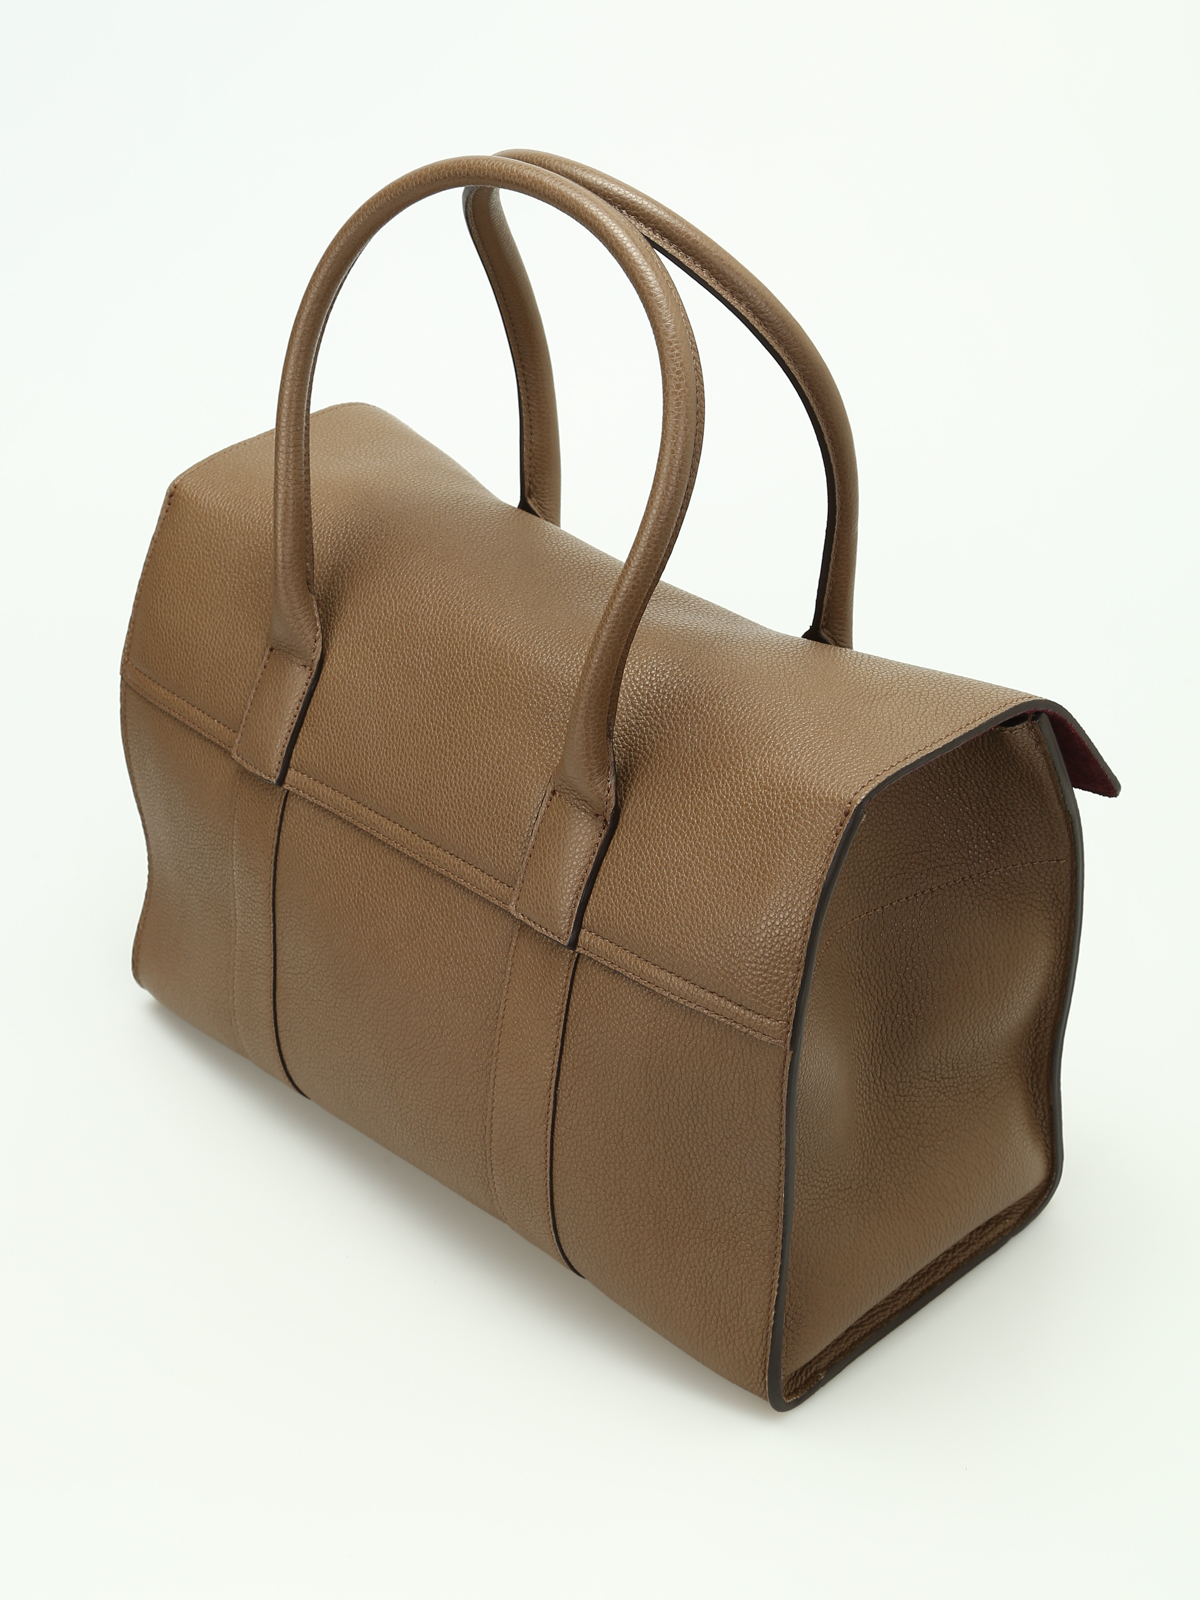 Mulberry - New Bayswater bag - bowling bags - HH3794 205D614  80c592817cedf